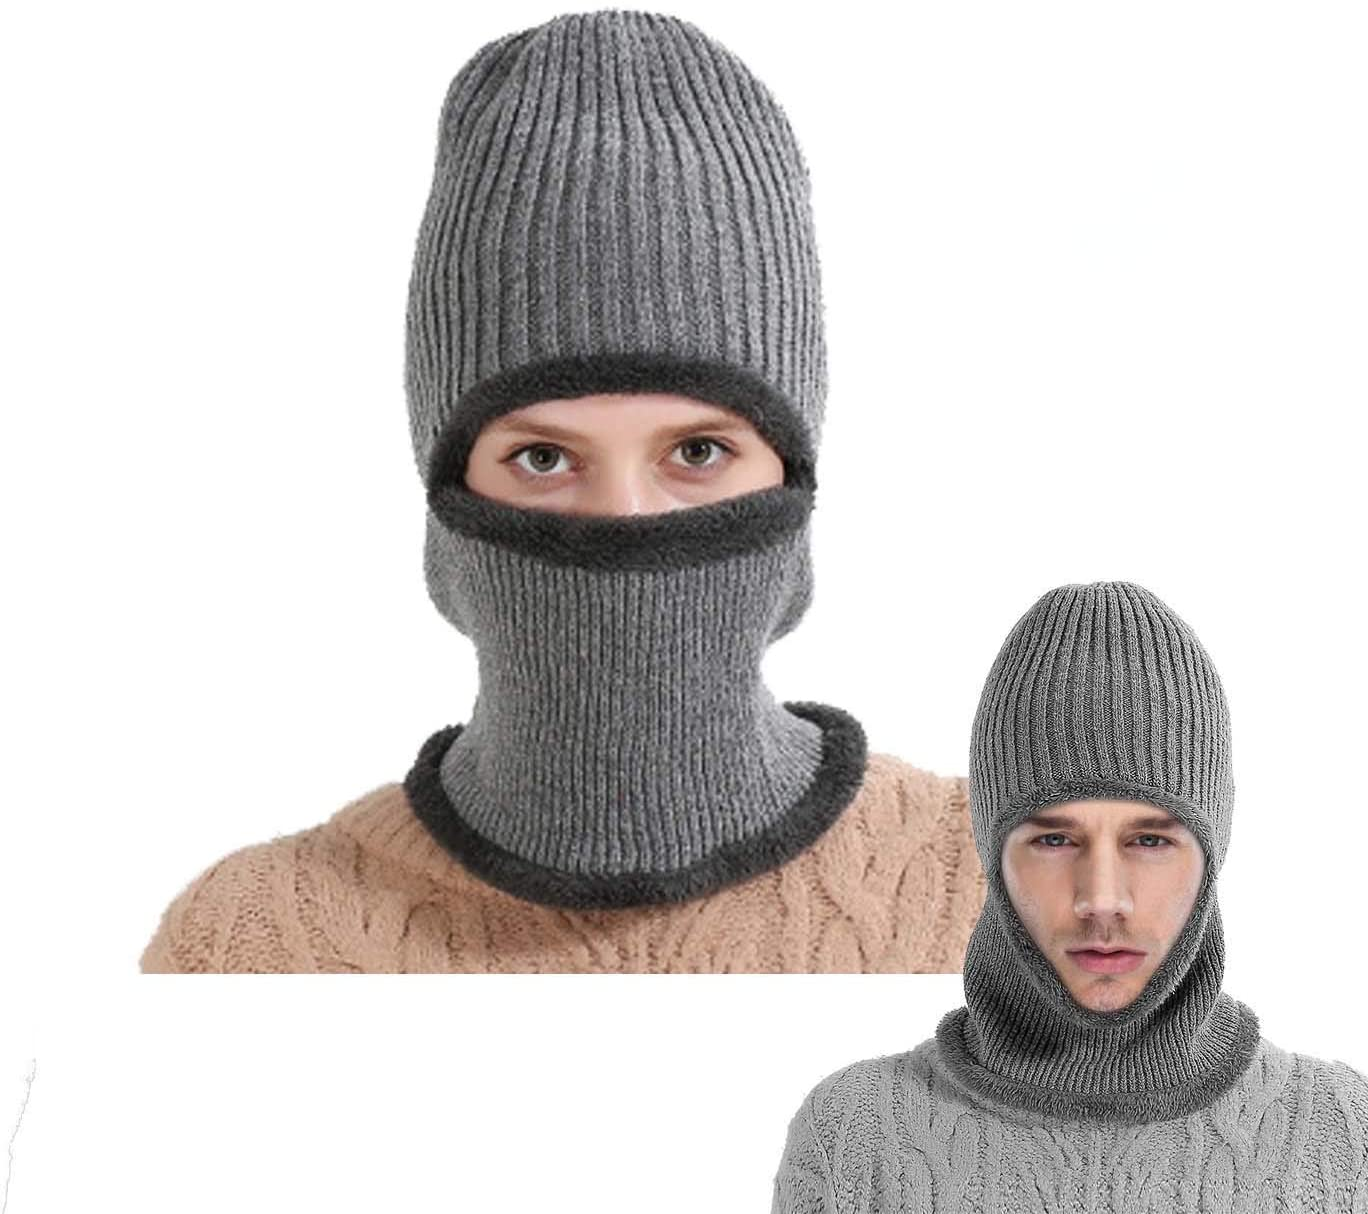 Mocofo Flannel Unisex Beanie Hat The Softest Kint Winter Face Mask Riding Hat Add Warm Velvet Protection & Slouchy Trendy 3-in-1 Grey Cold Weather Beanies with Flexible Neck Guard for Outdoors